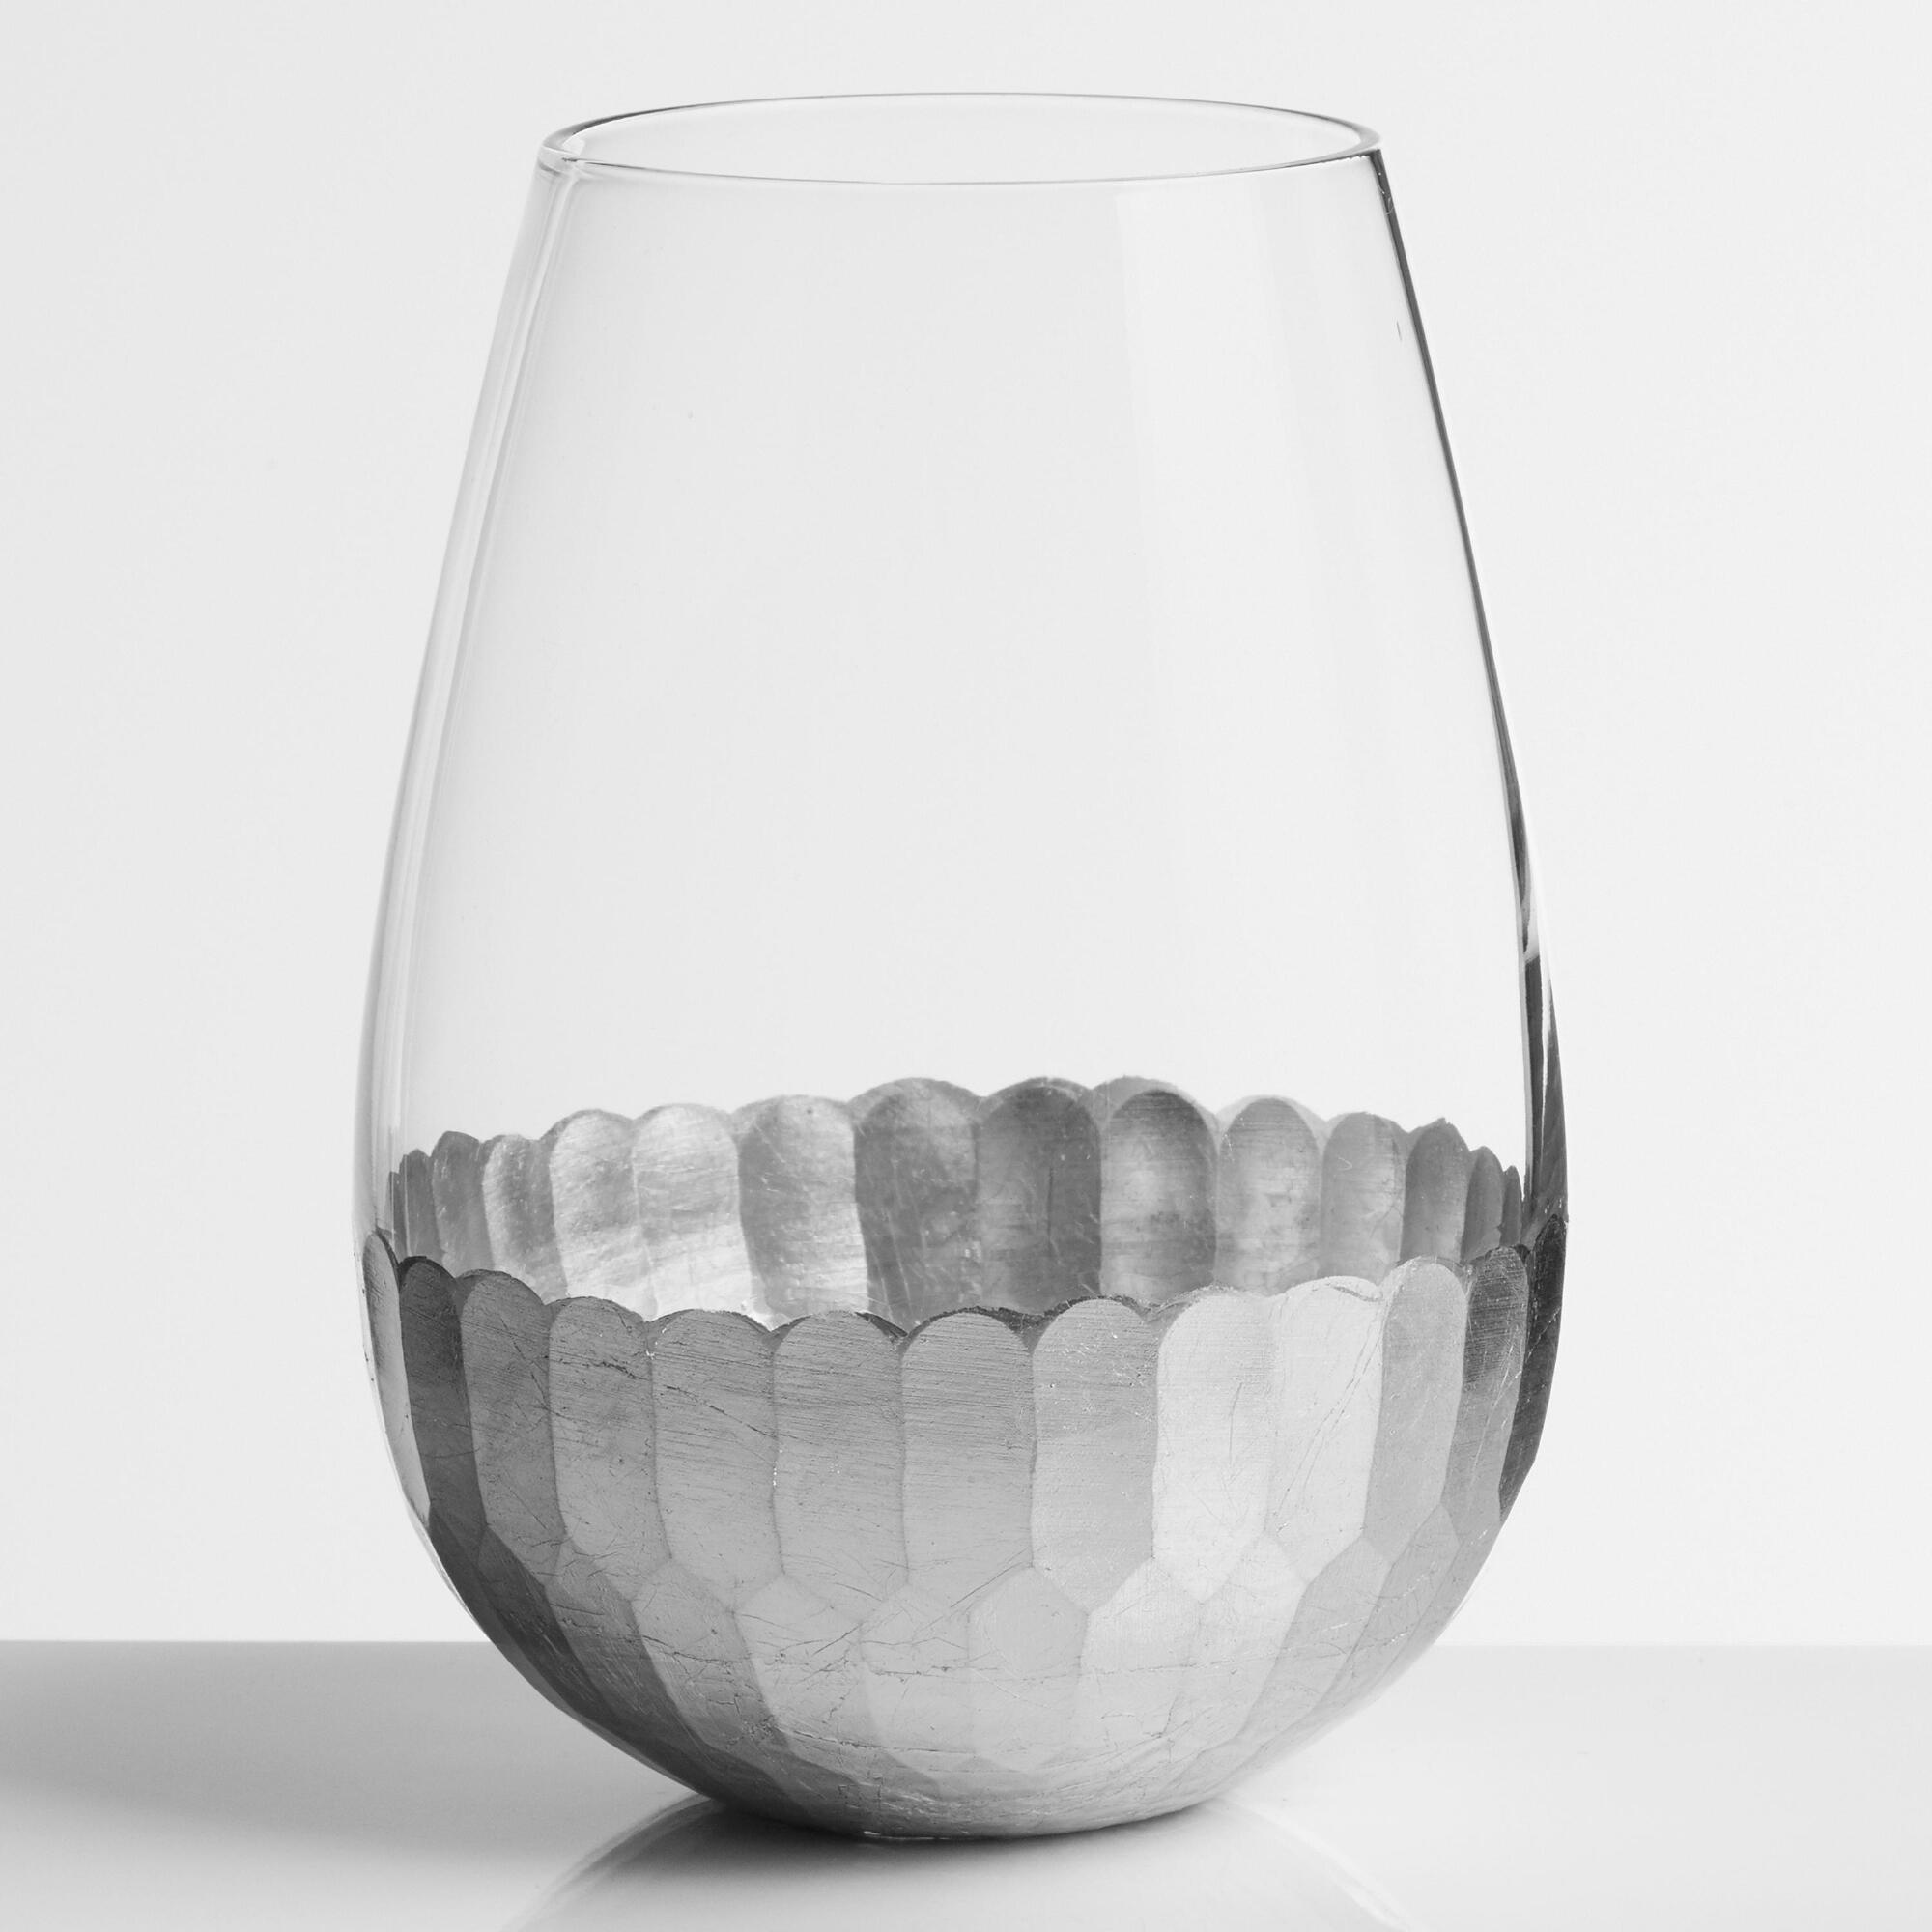 Silver faceted stemless wine glasses set of 4 world market - Stemless wine goblets ...